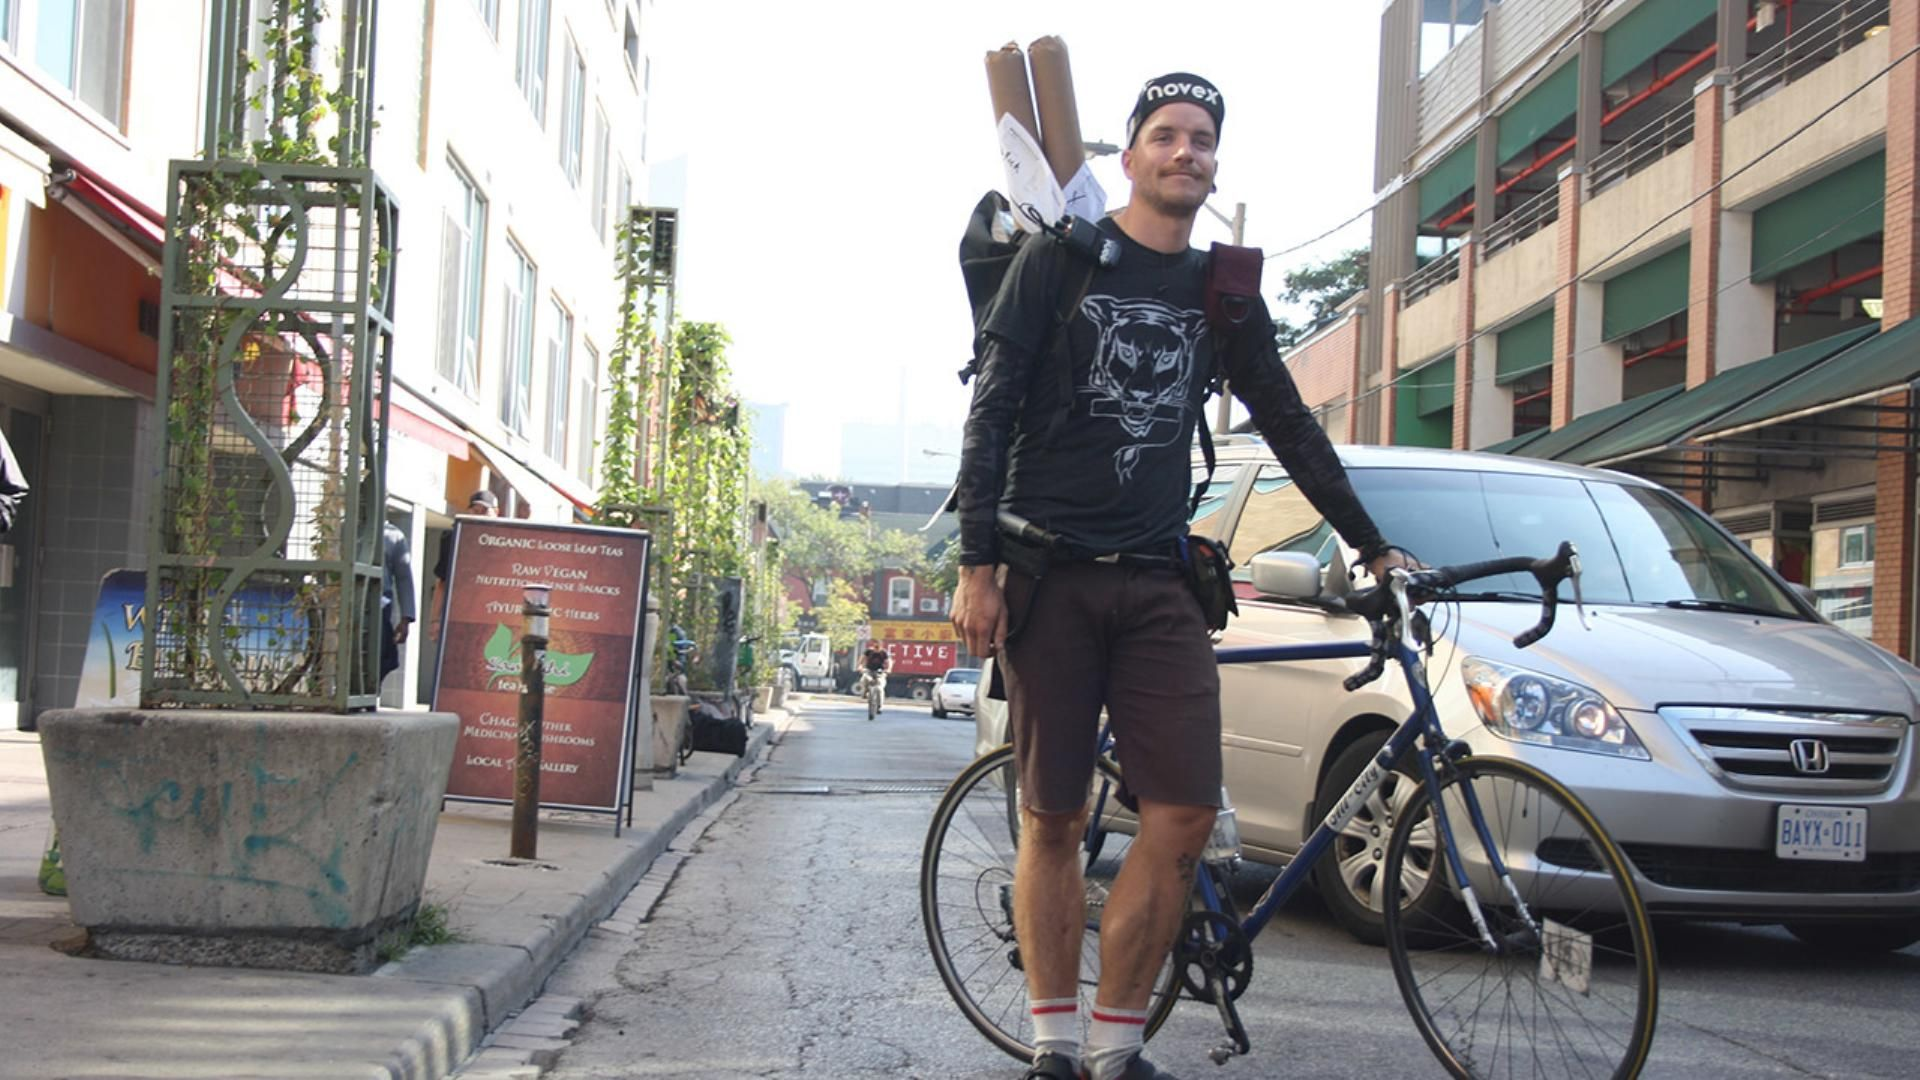 I Spent a Terrifying Day Trying to Keep Up with a Bike Messenger - VICE